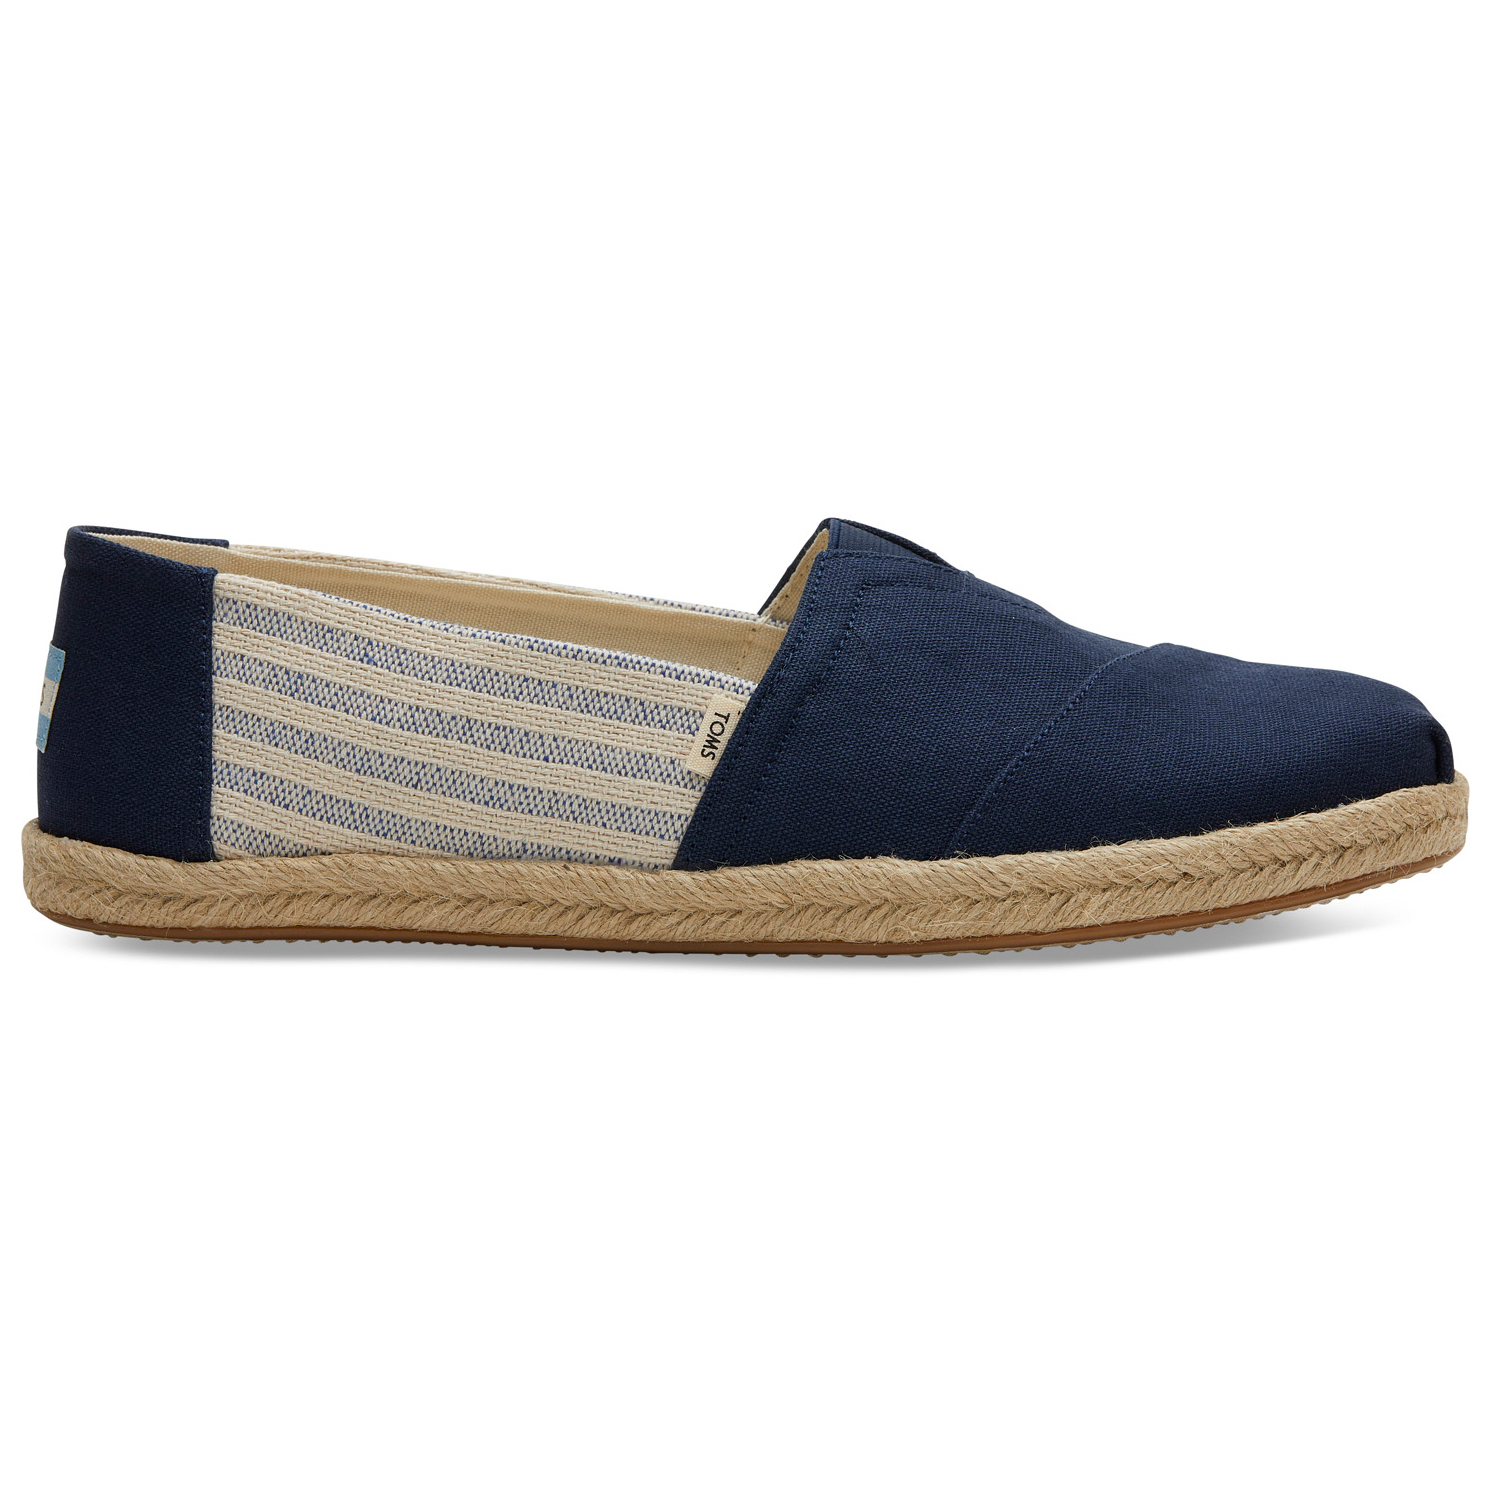 b1dc74578 TOMS Alpargata University Classics Espadrille - Sneakers Men's | Buy ...